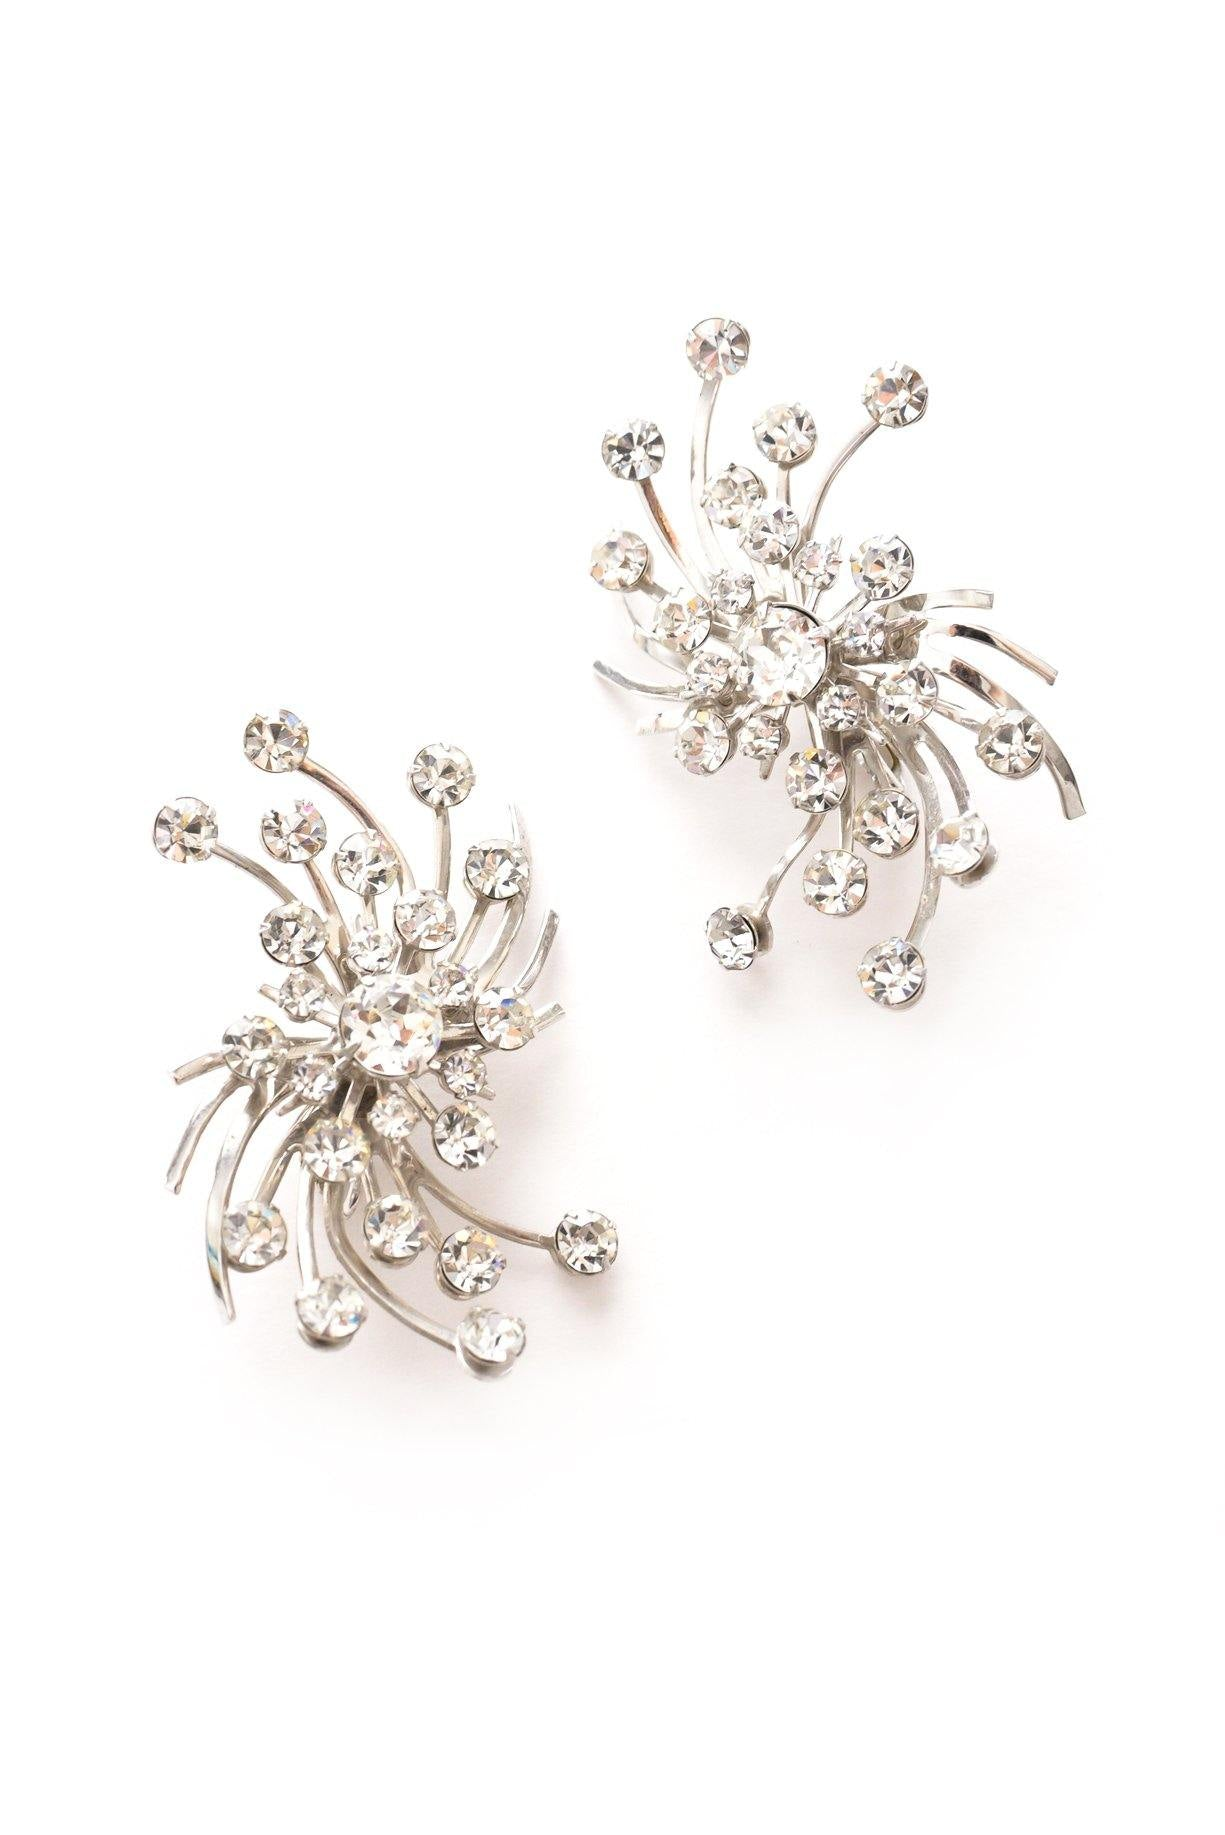 Rhinestone fireworks earrings from Sweet & Spark.